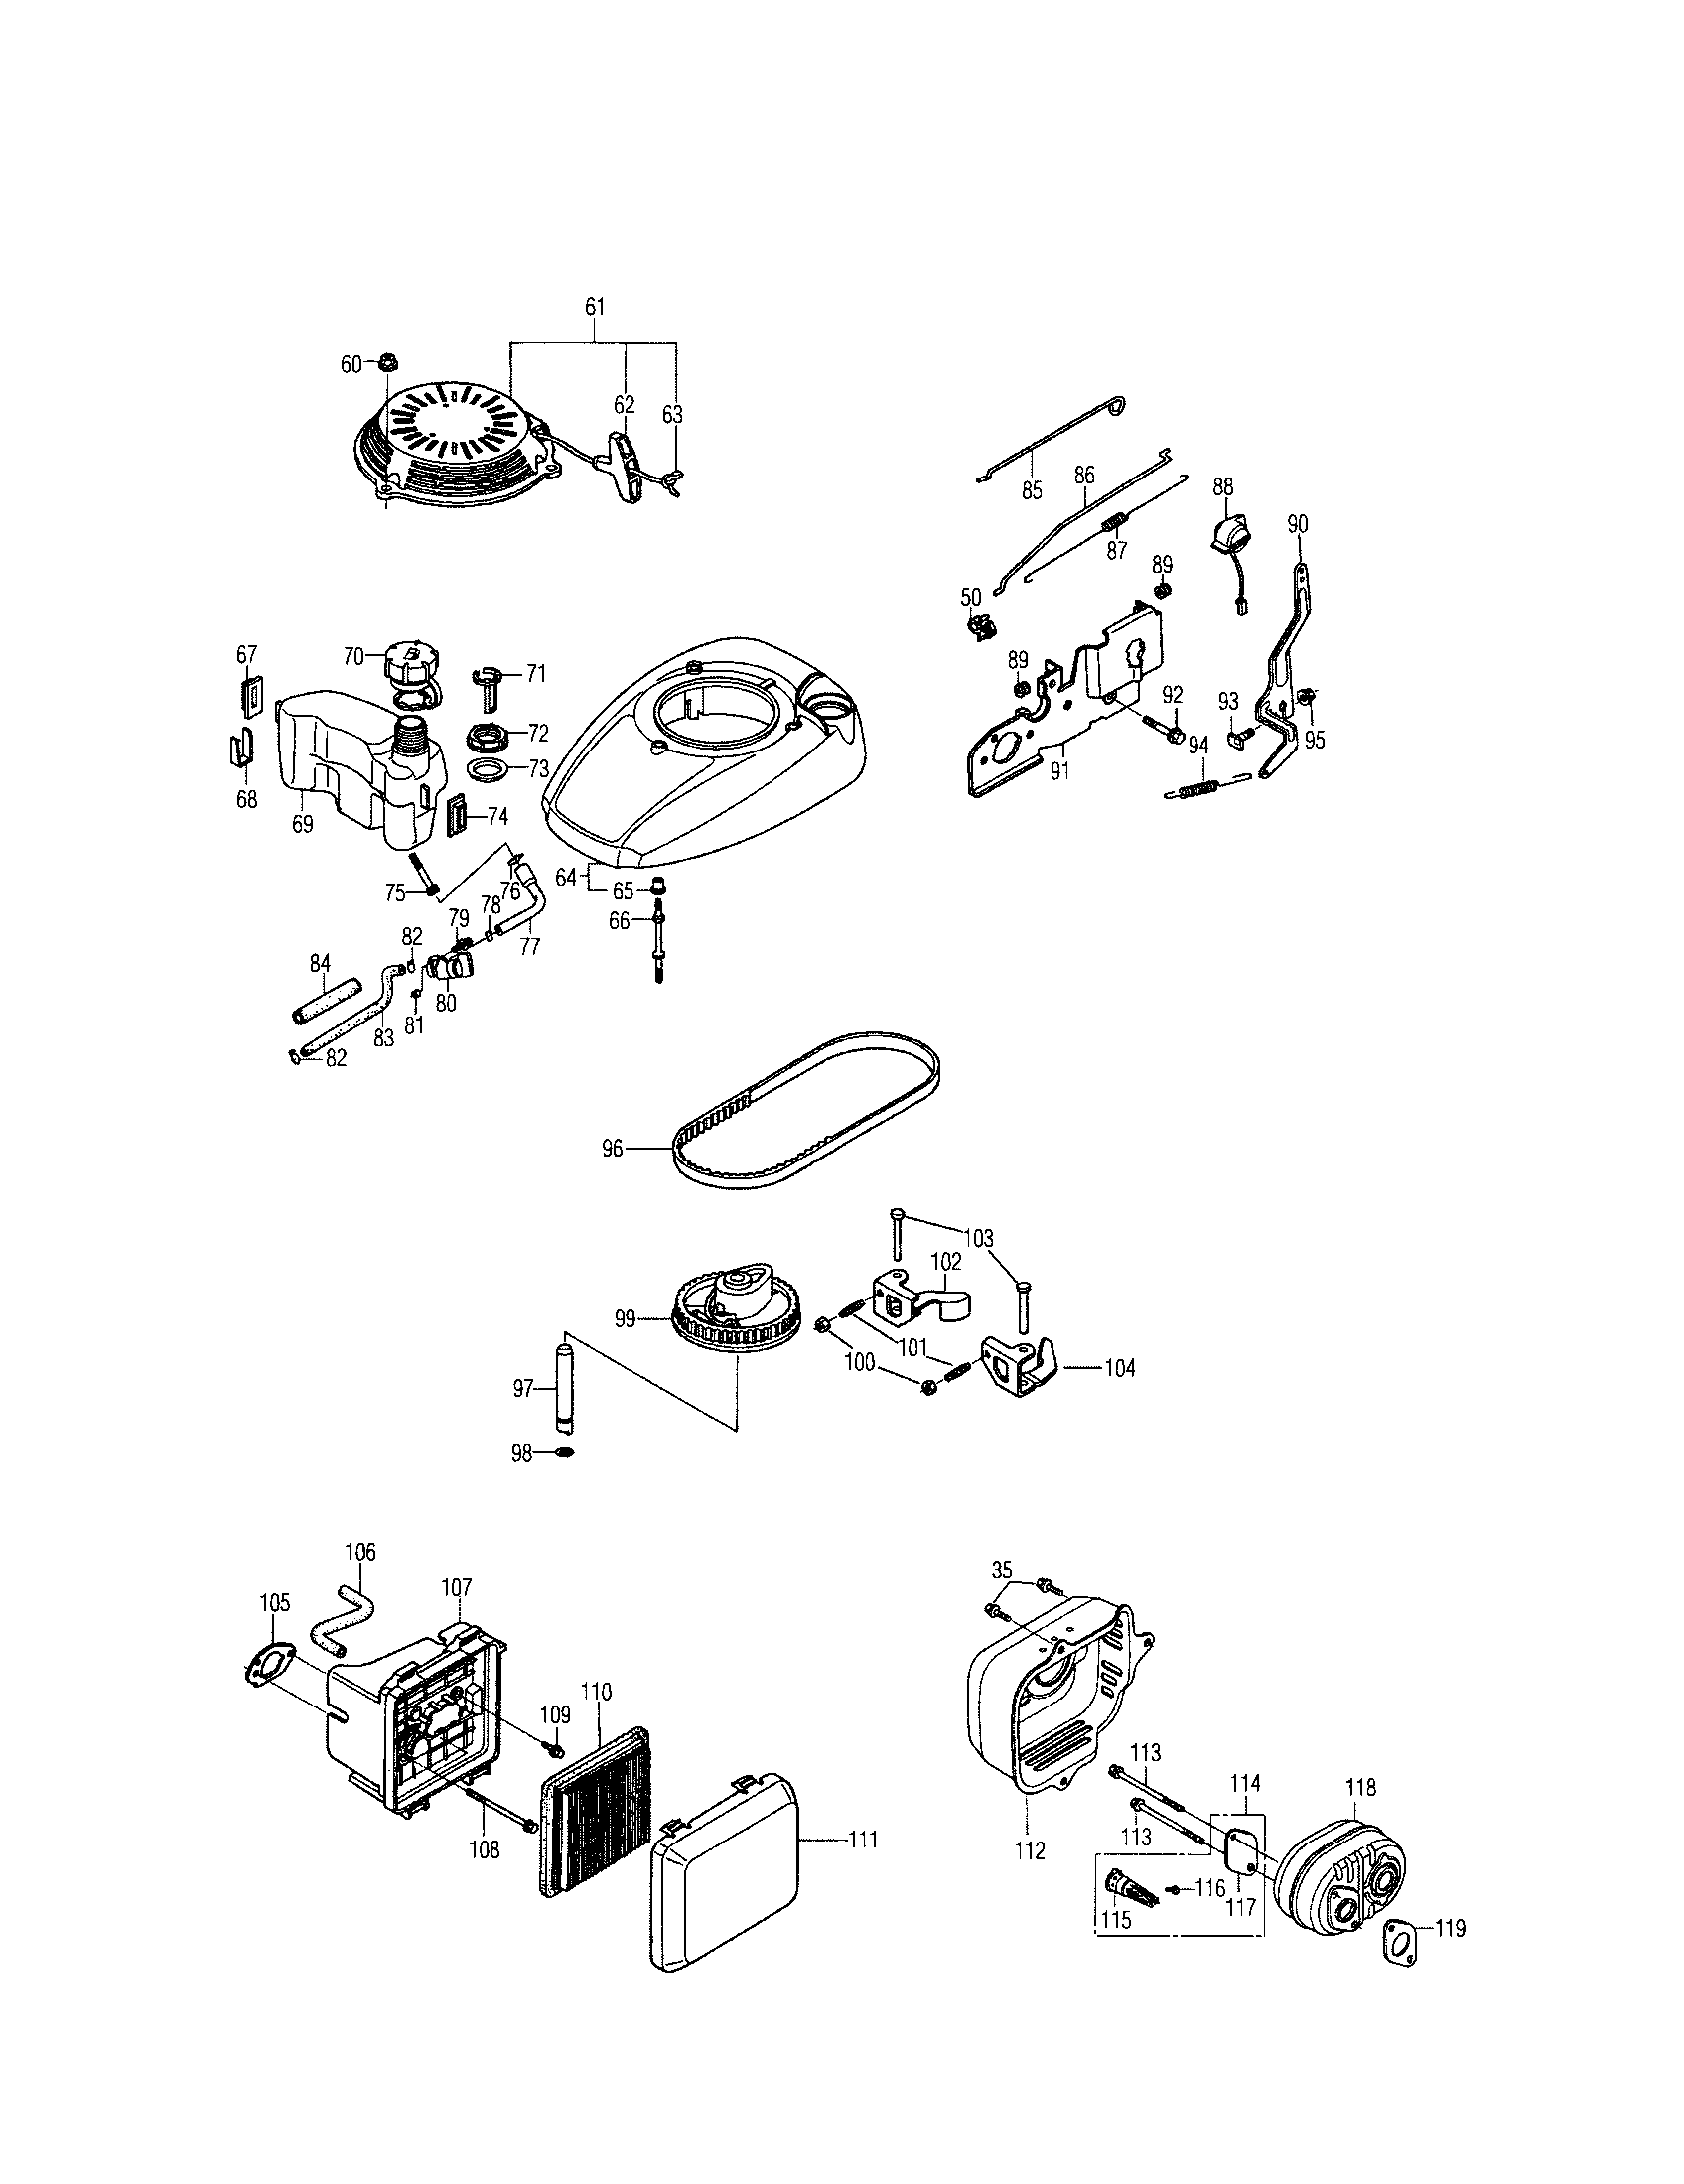 honda gcv160 lan5r fuel tank air cleaner diagram [ 1696 x 2200 Pixel ]